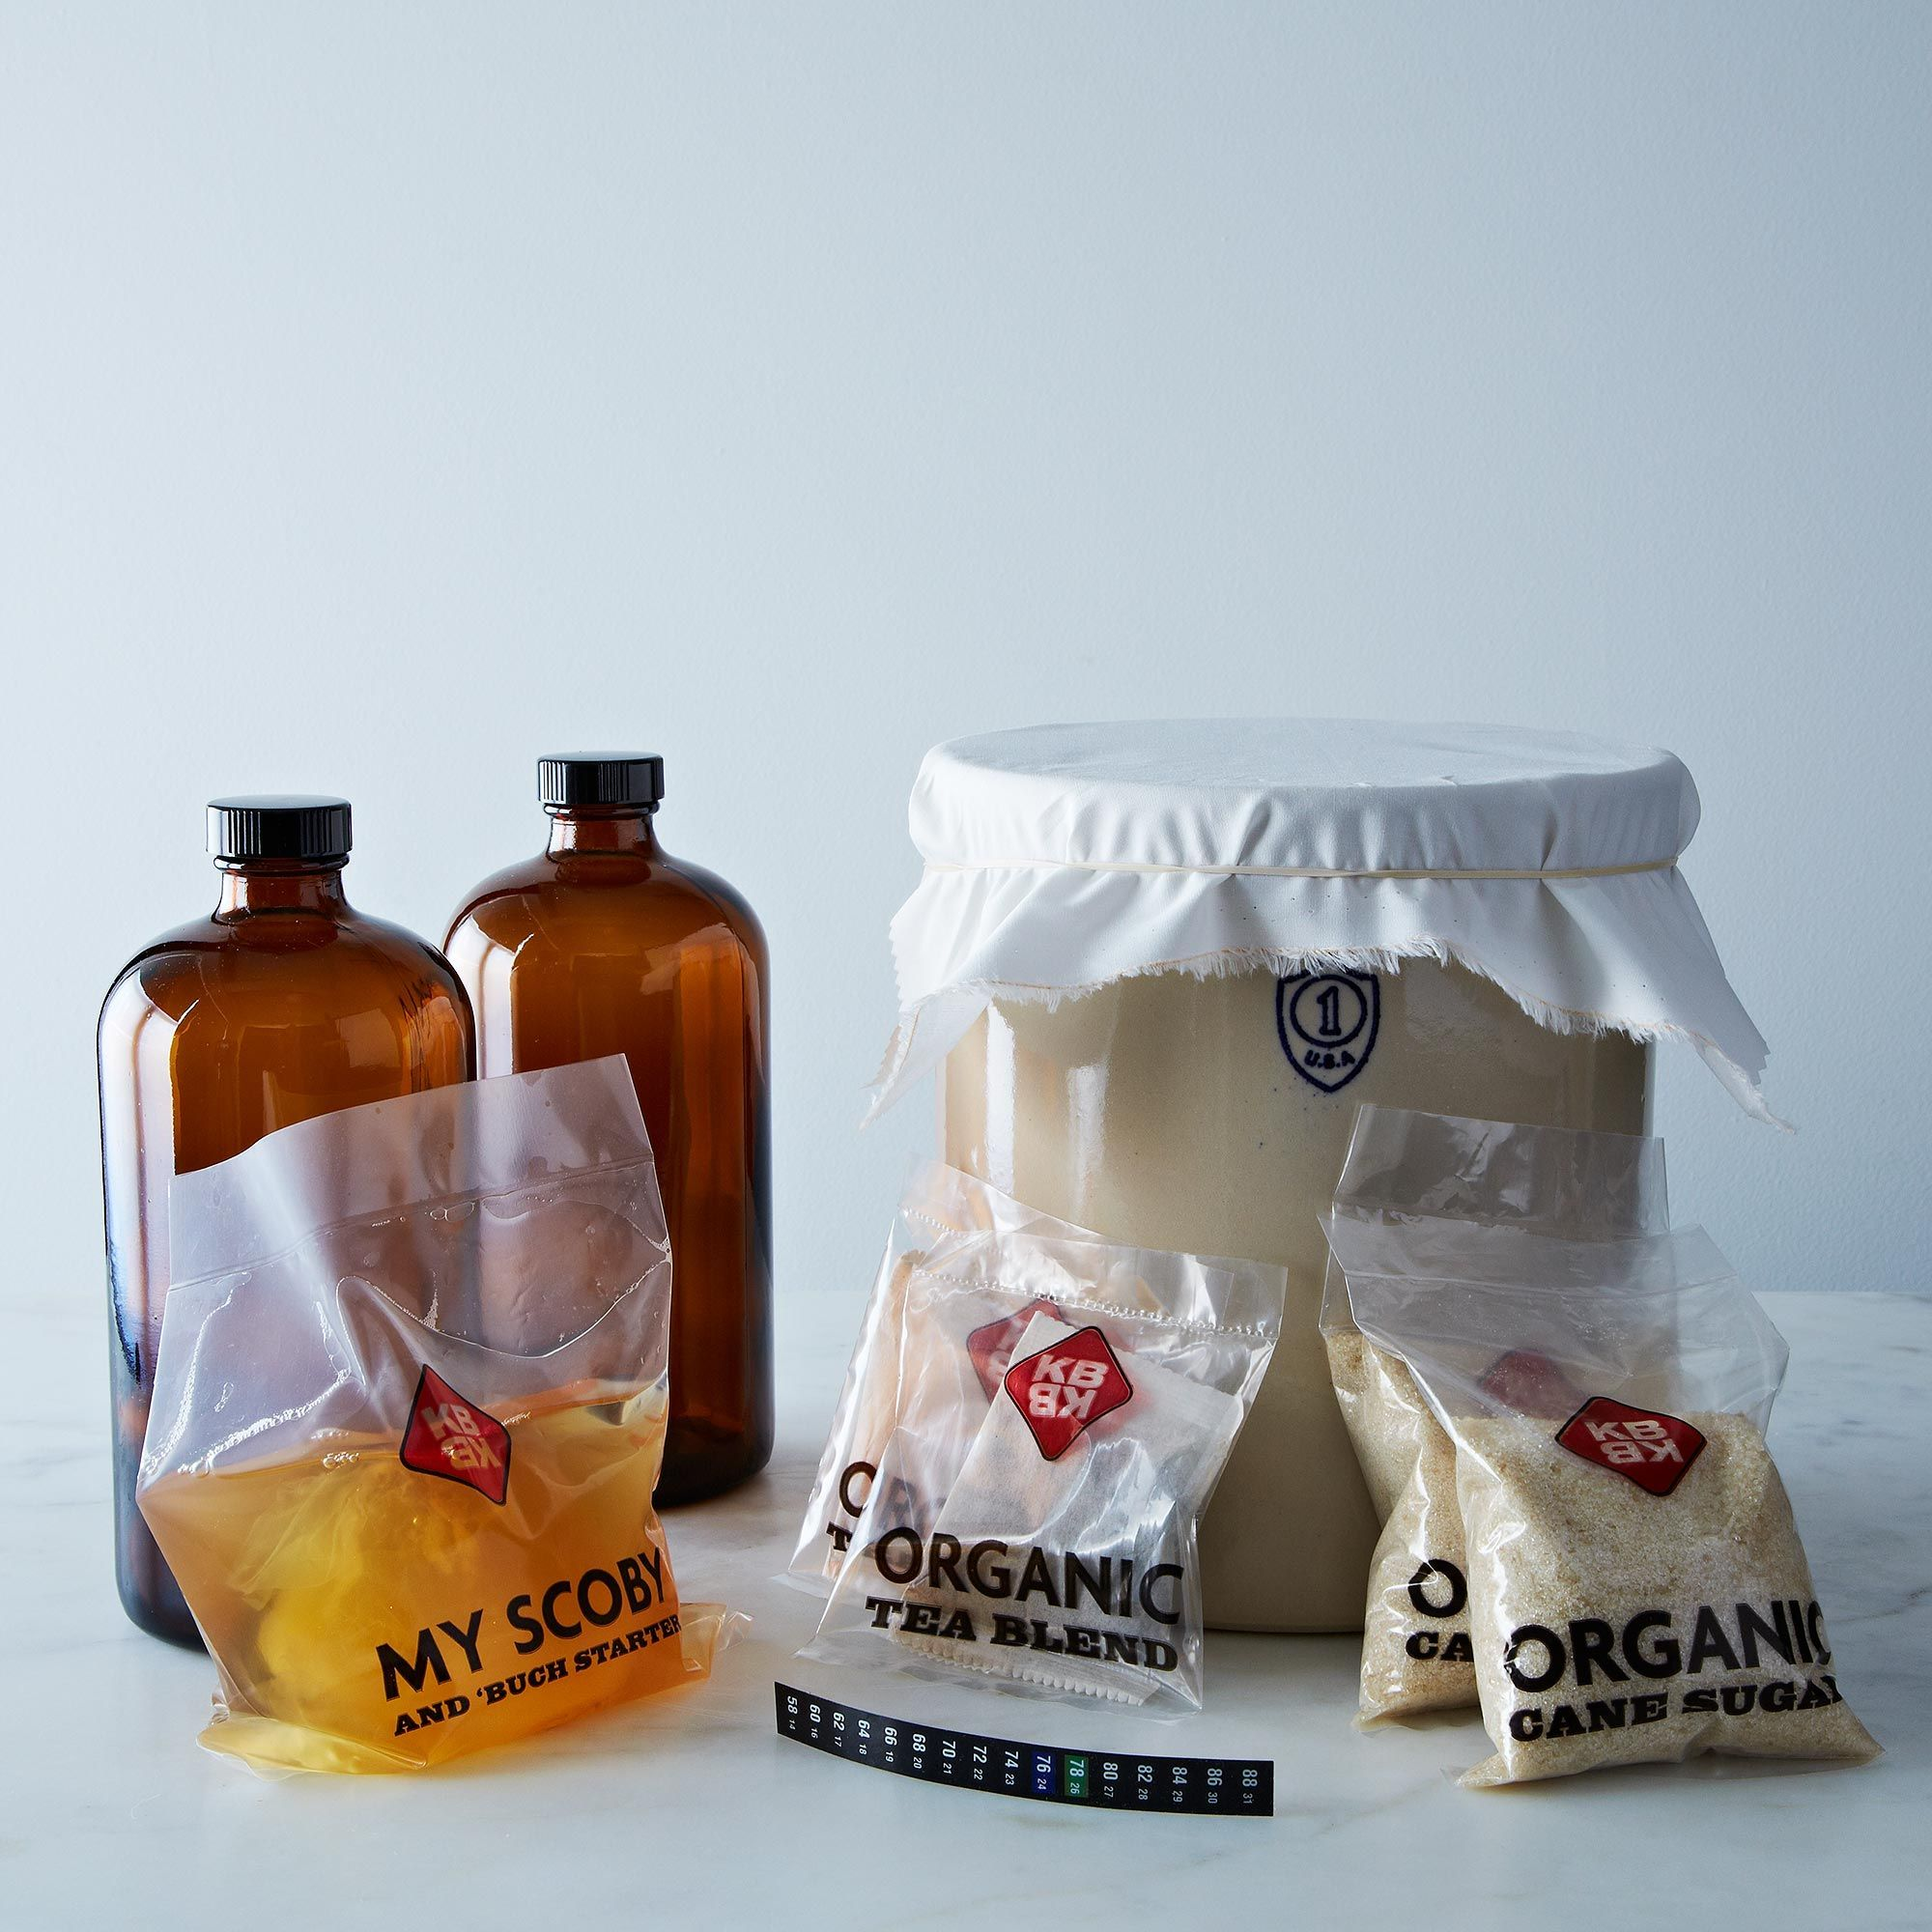 Df9403a8 117d 4844 a27f 3b9b56c6ae45  2013 0815 kombucha brooklyn 1 gallon ceramic deluxe kit 015